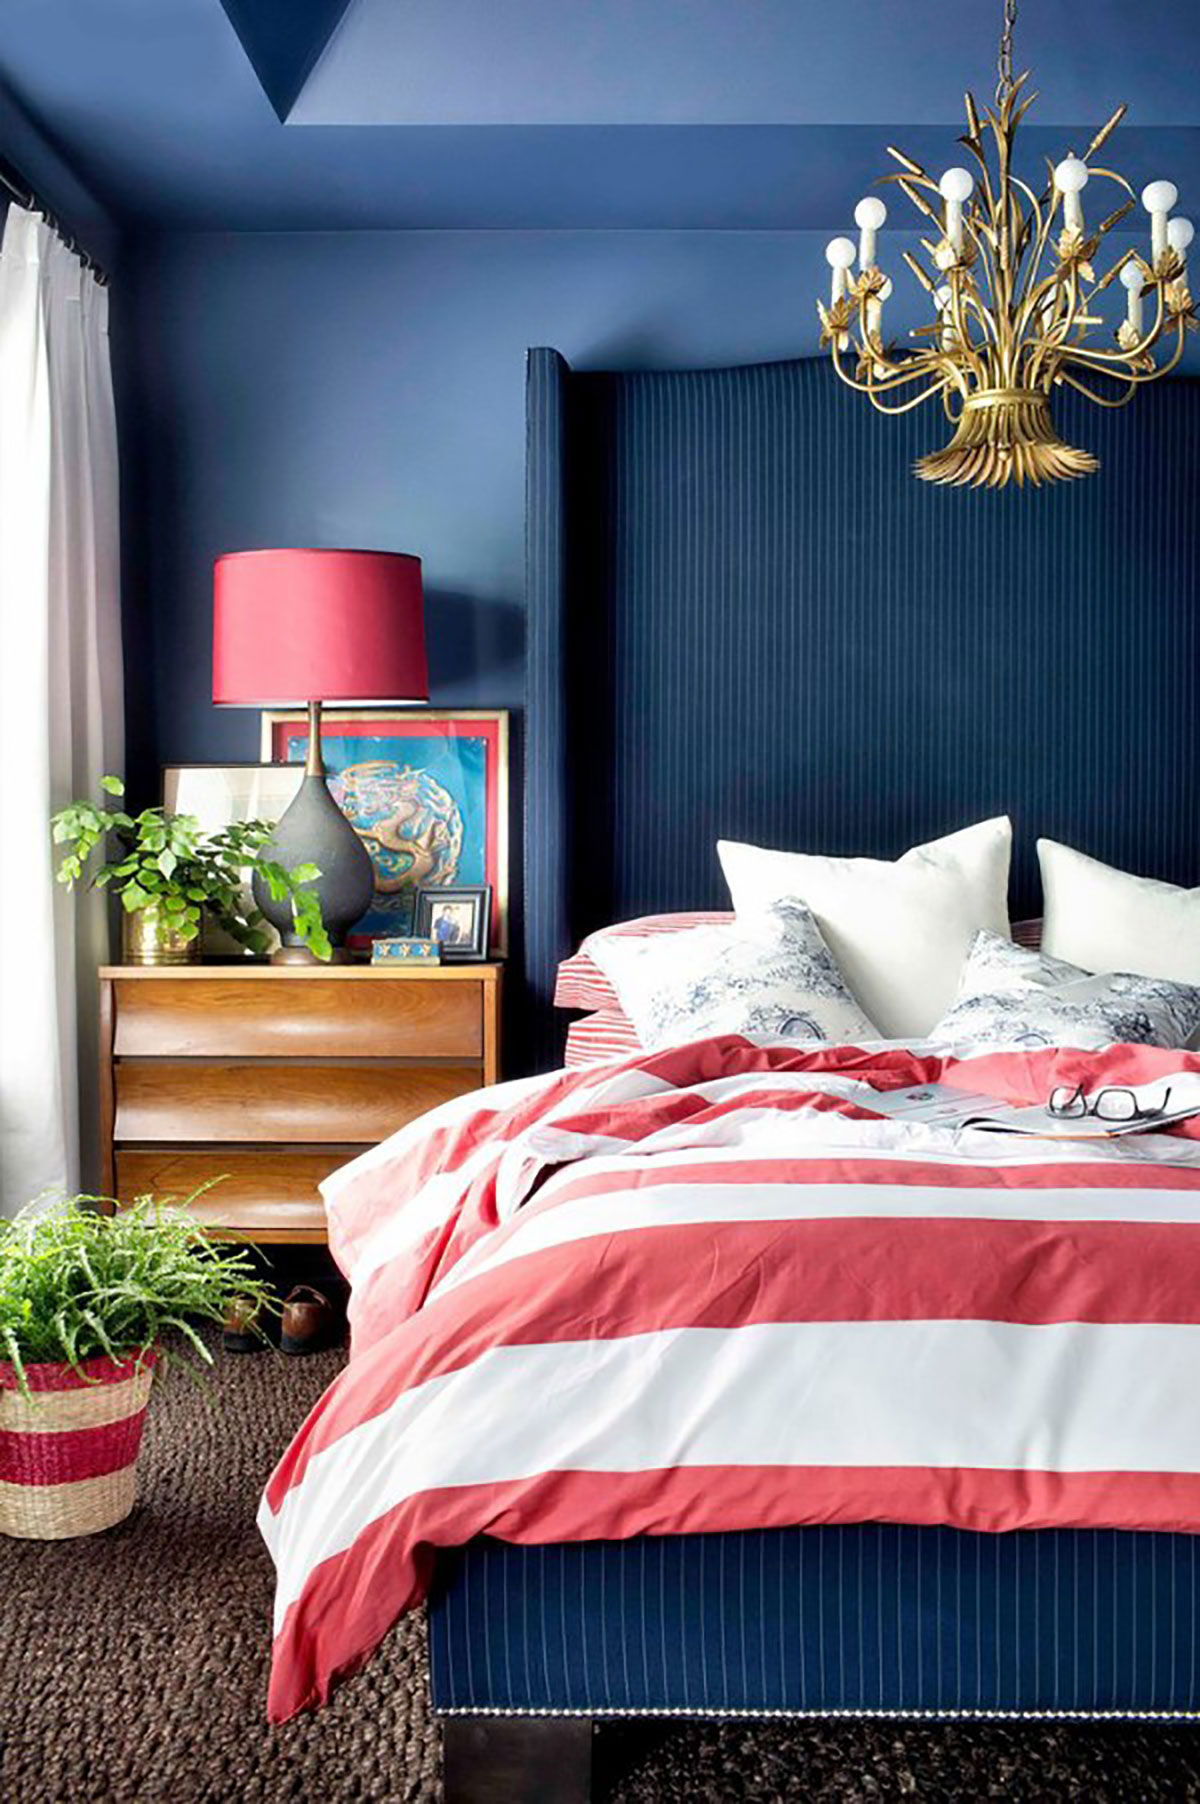 10 Chic Ways To Decorate In Red, White And Blue